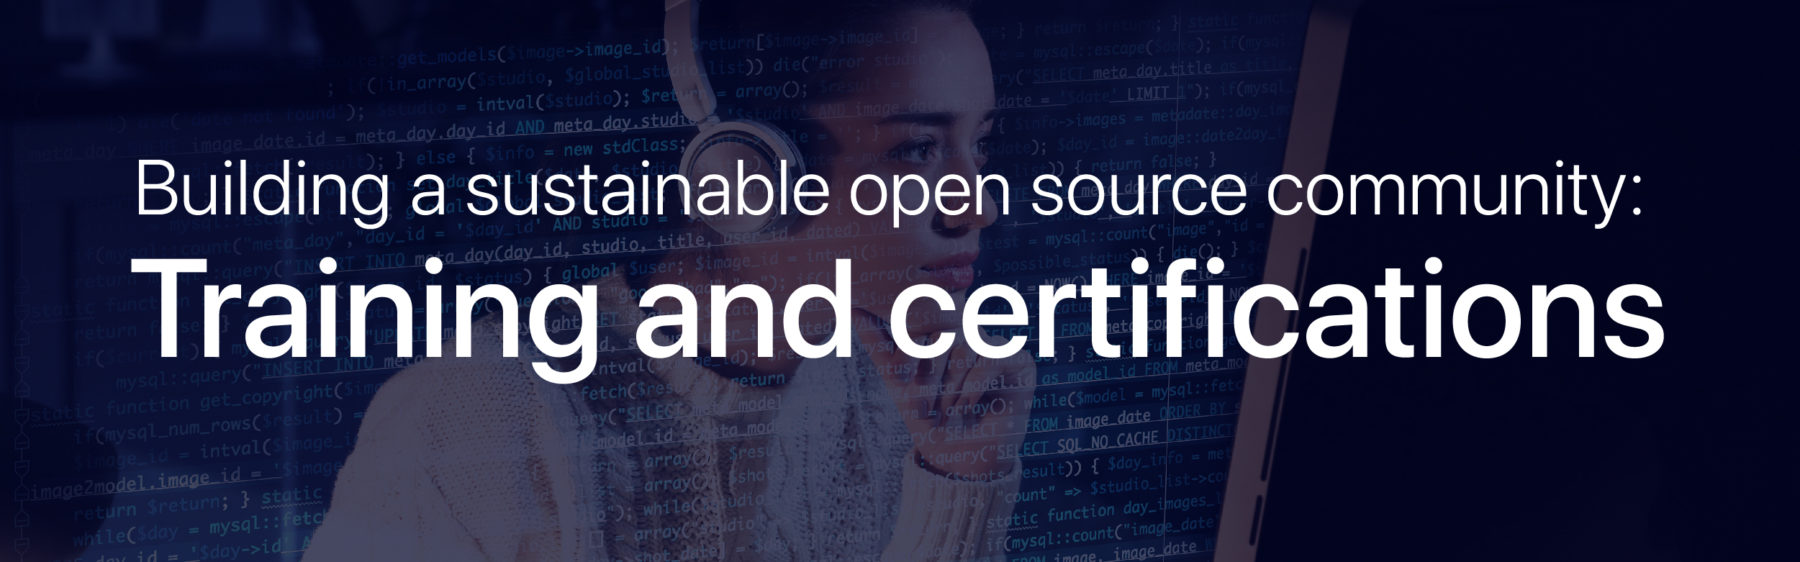 Building a sustainable open source community: training and certifications